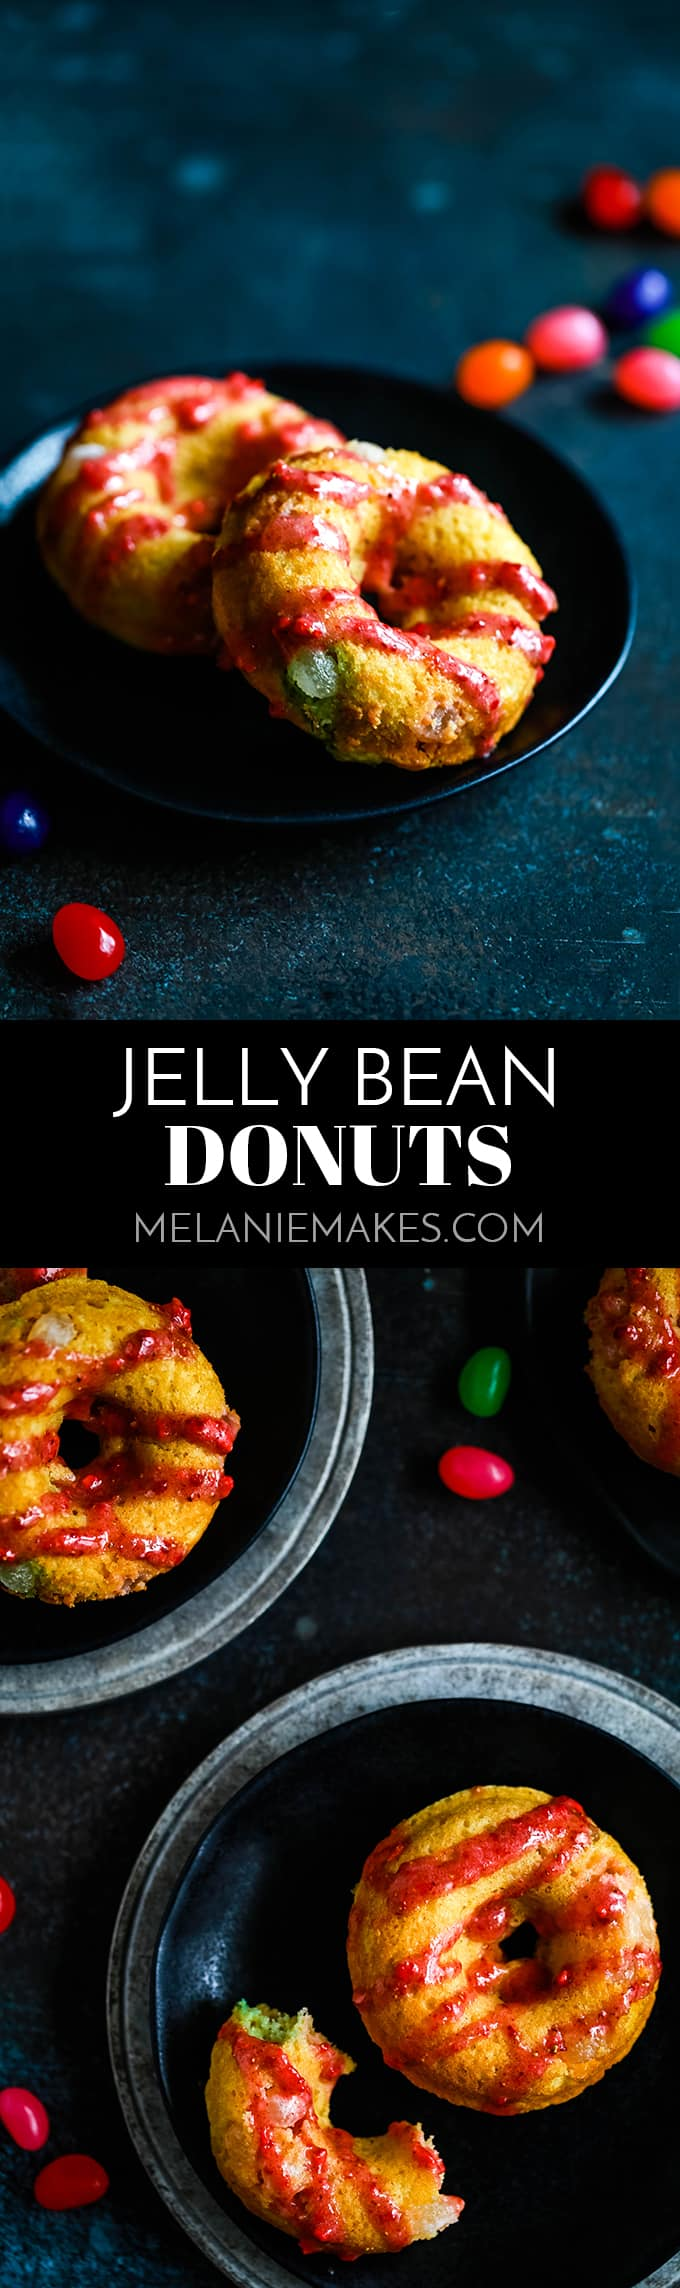 These Jelly Bean Donuts are studded with jelly beans and drizzled with a strawberry glaze.  The perfect treat starring candy from your Easter basket! #easter #jellybean #candy #breakfast #donutparty #brunch #easyrecipe